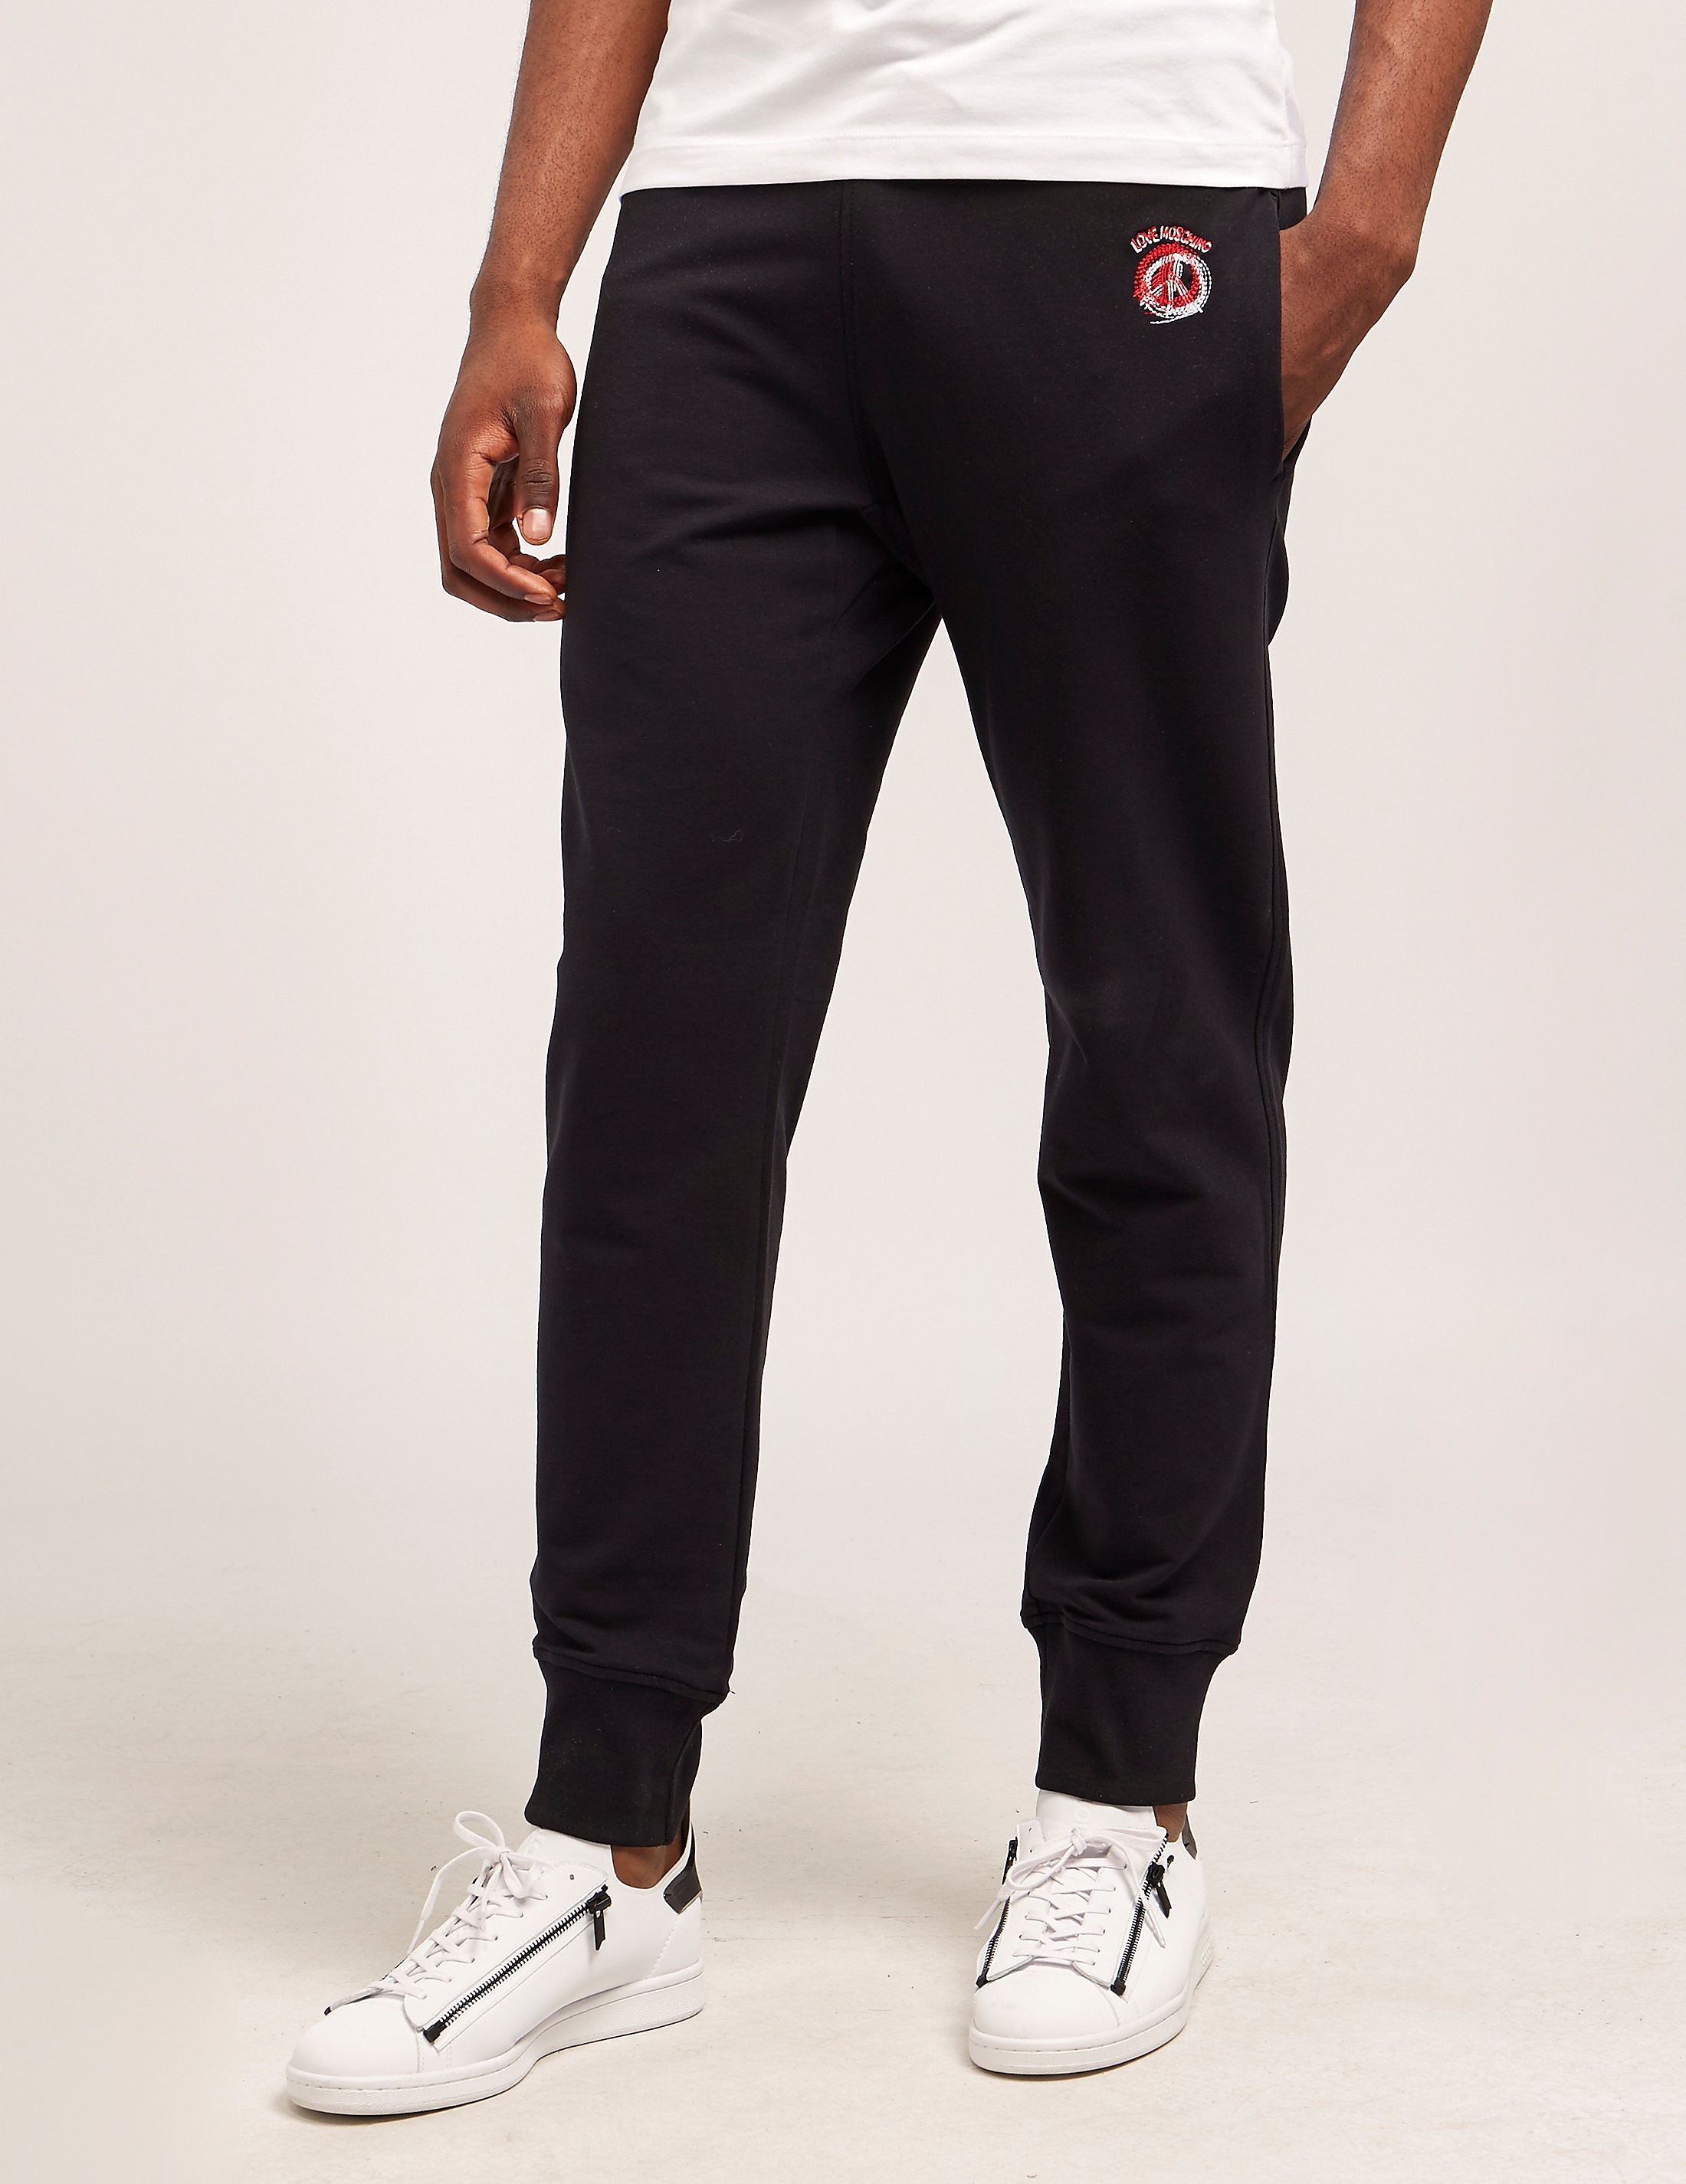 Love Moschino Stencil Peace Cuffed Track Pants